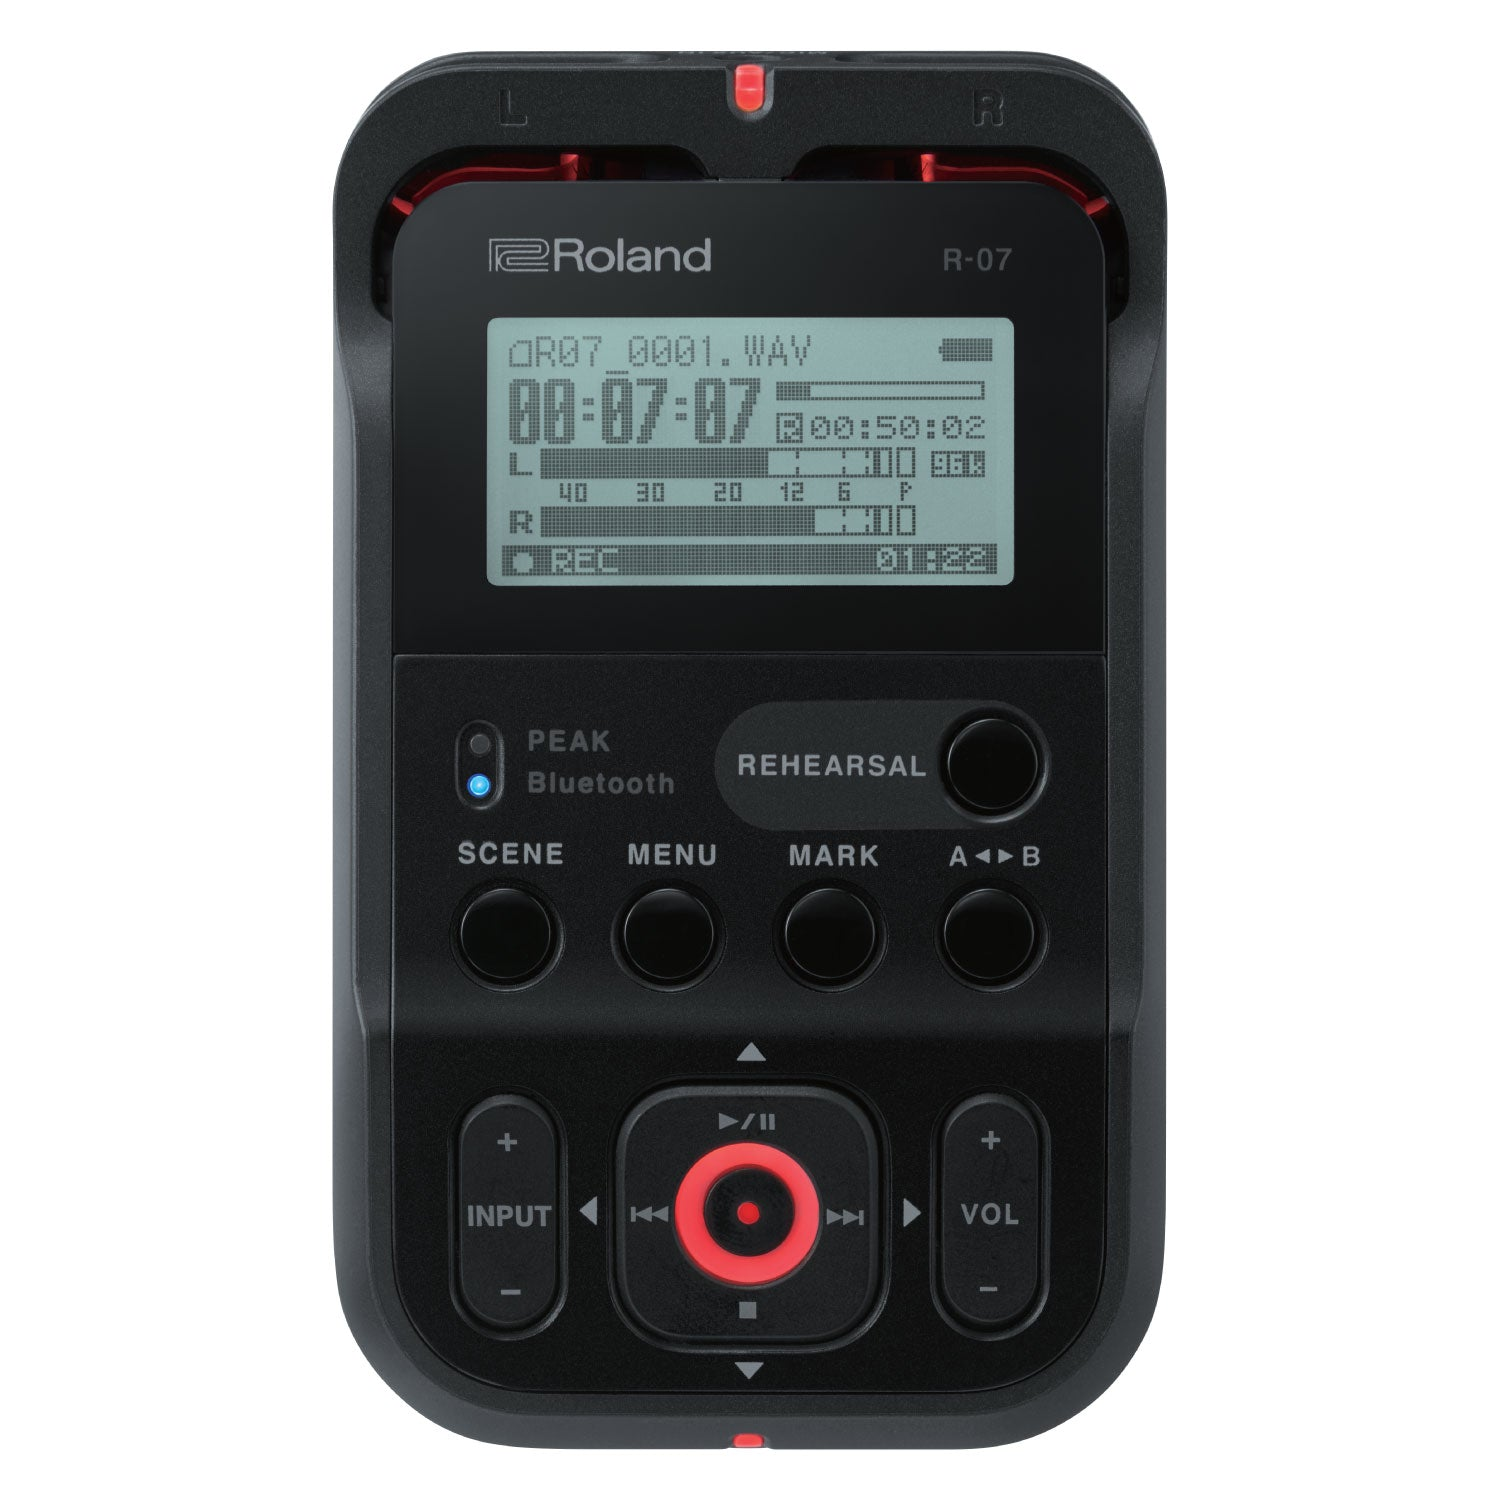 Roland R-07 High-Res Handheld Recorder